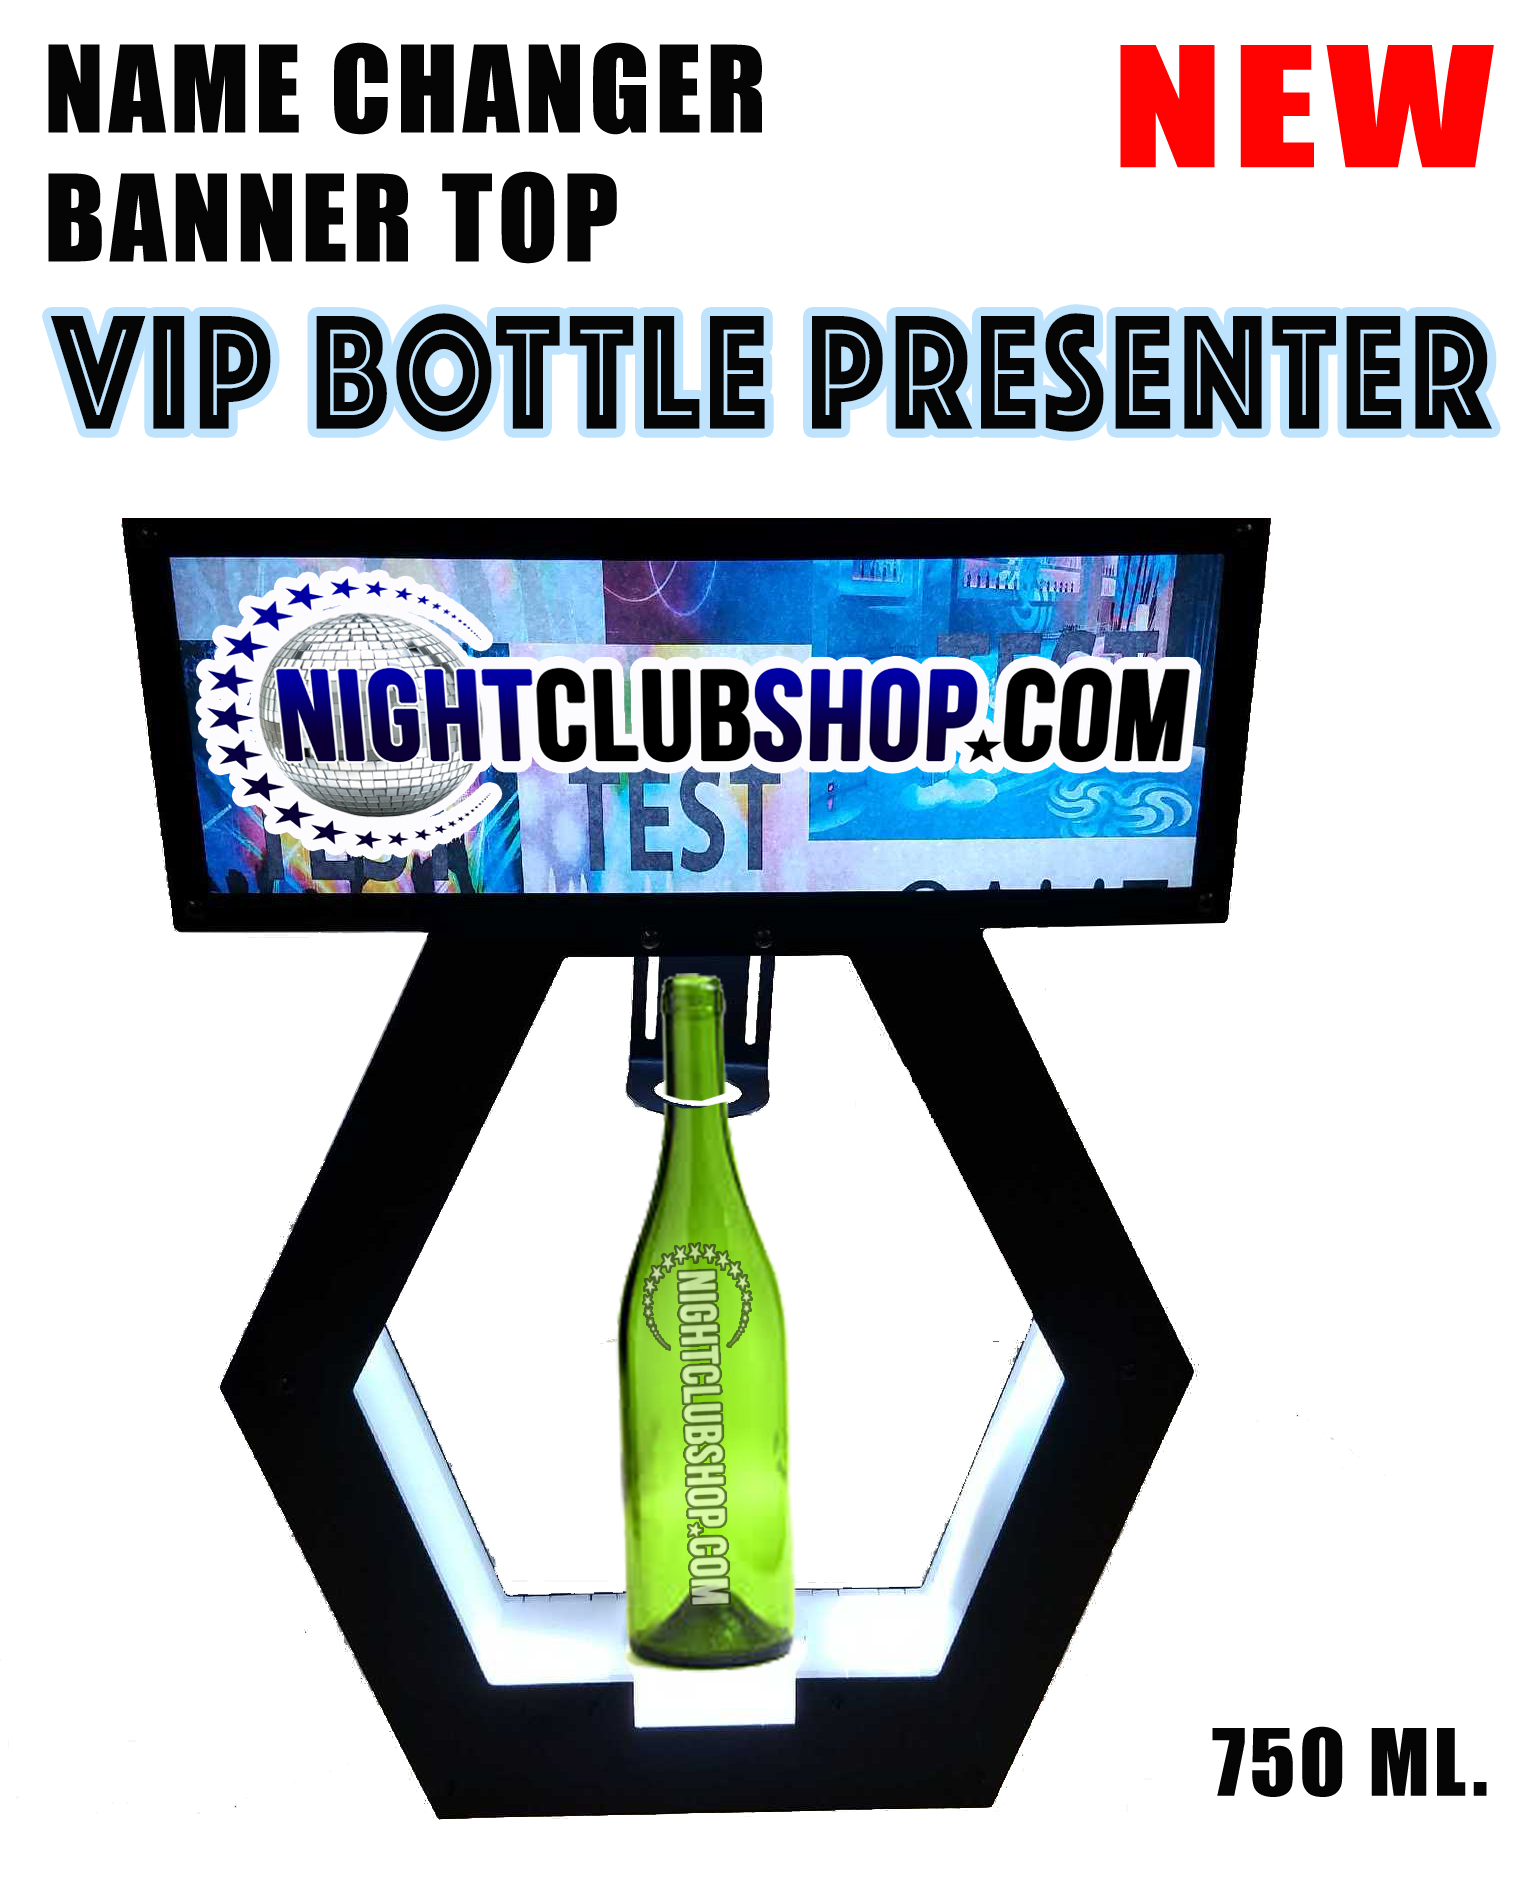 universal-vip-champagne-bottle-service-presenter-banner-top-universal-name-letter-change-changer-custom-led-nightclubshop.jpg